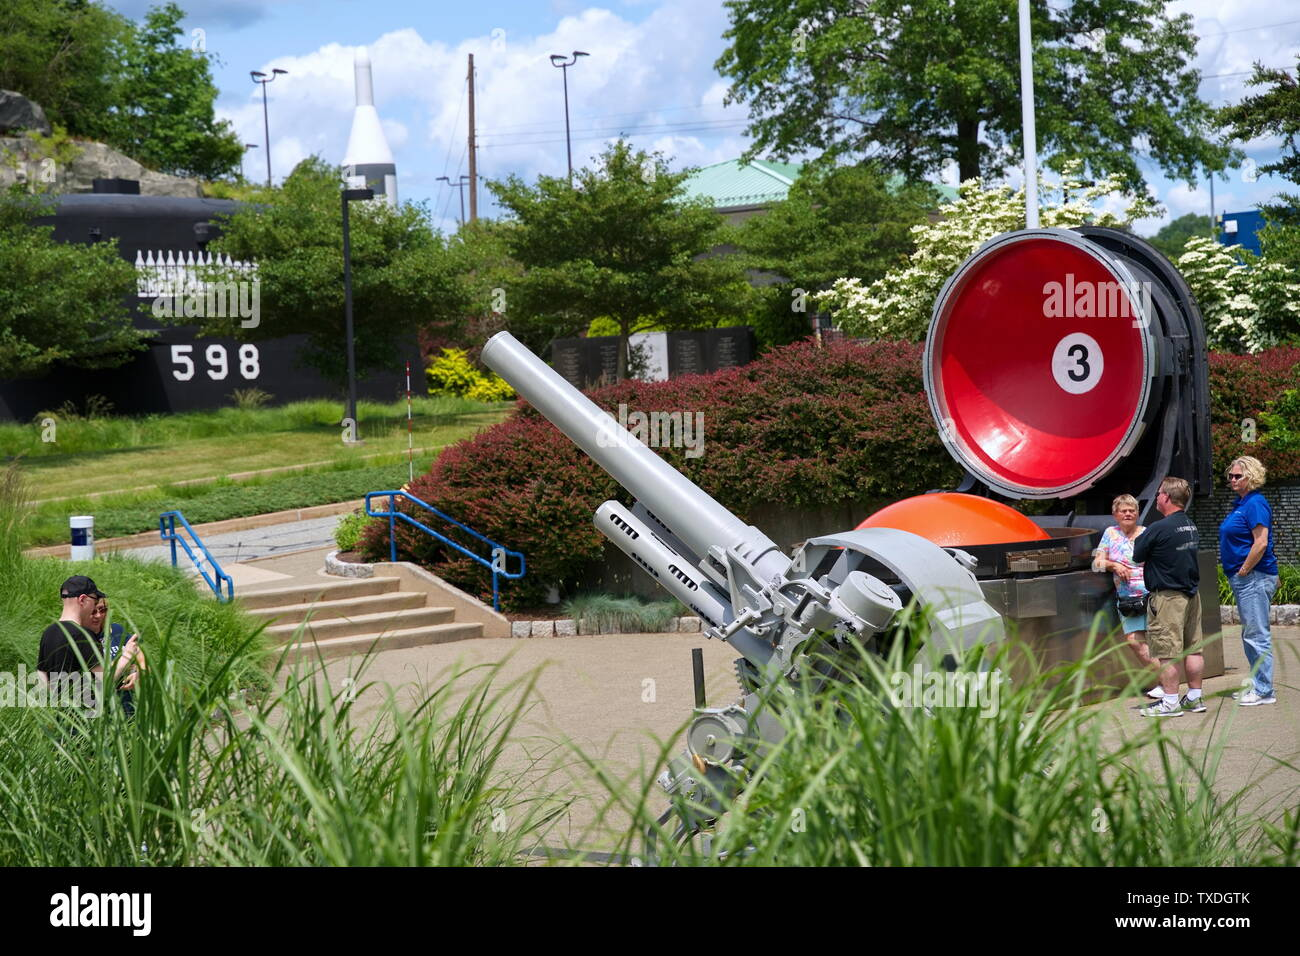 Submarine Force Museum, Groton CT USA, Jun 2019. Tourists taking pictures by deck guns of the past and ballistic missiles in their tubes of today. - Stock Image